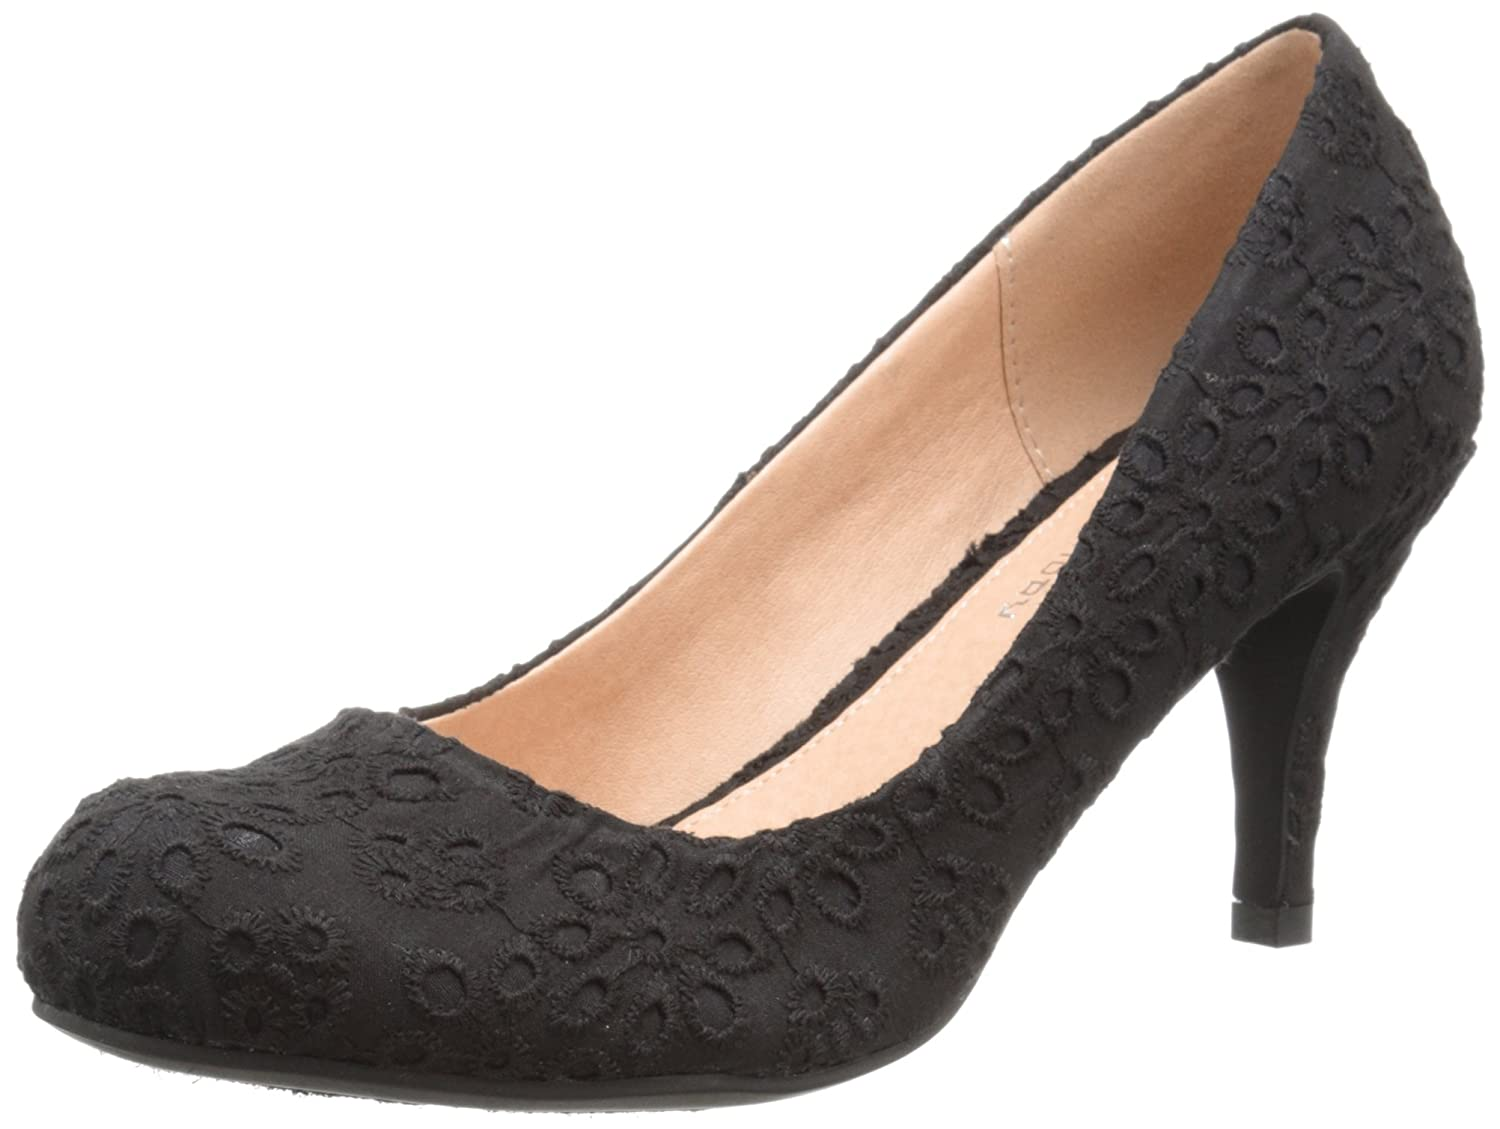 CL by Chinese Laundry Women's NANETTE EYELET dress Pump